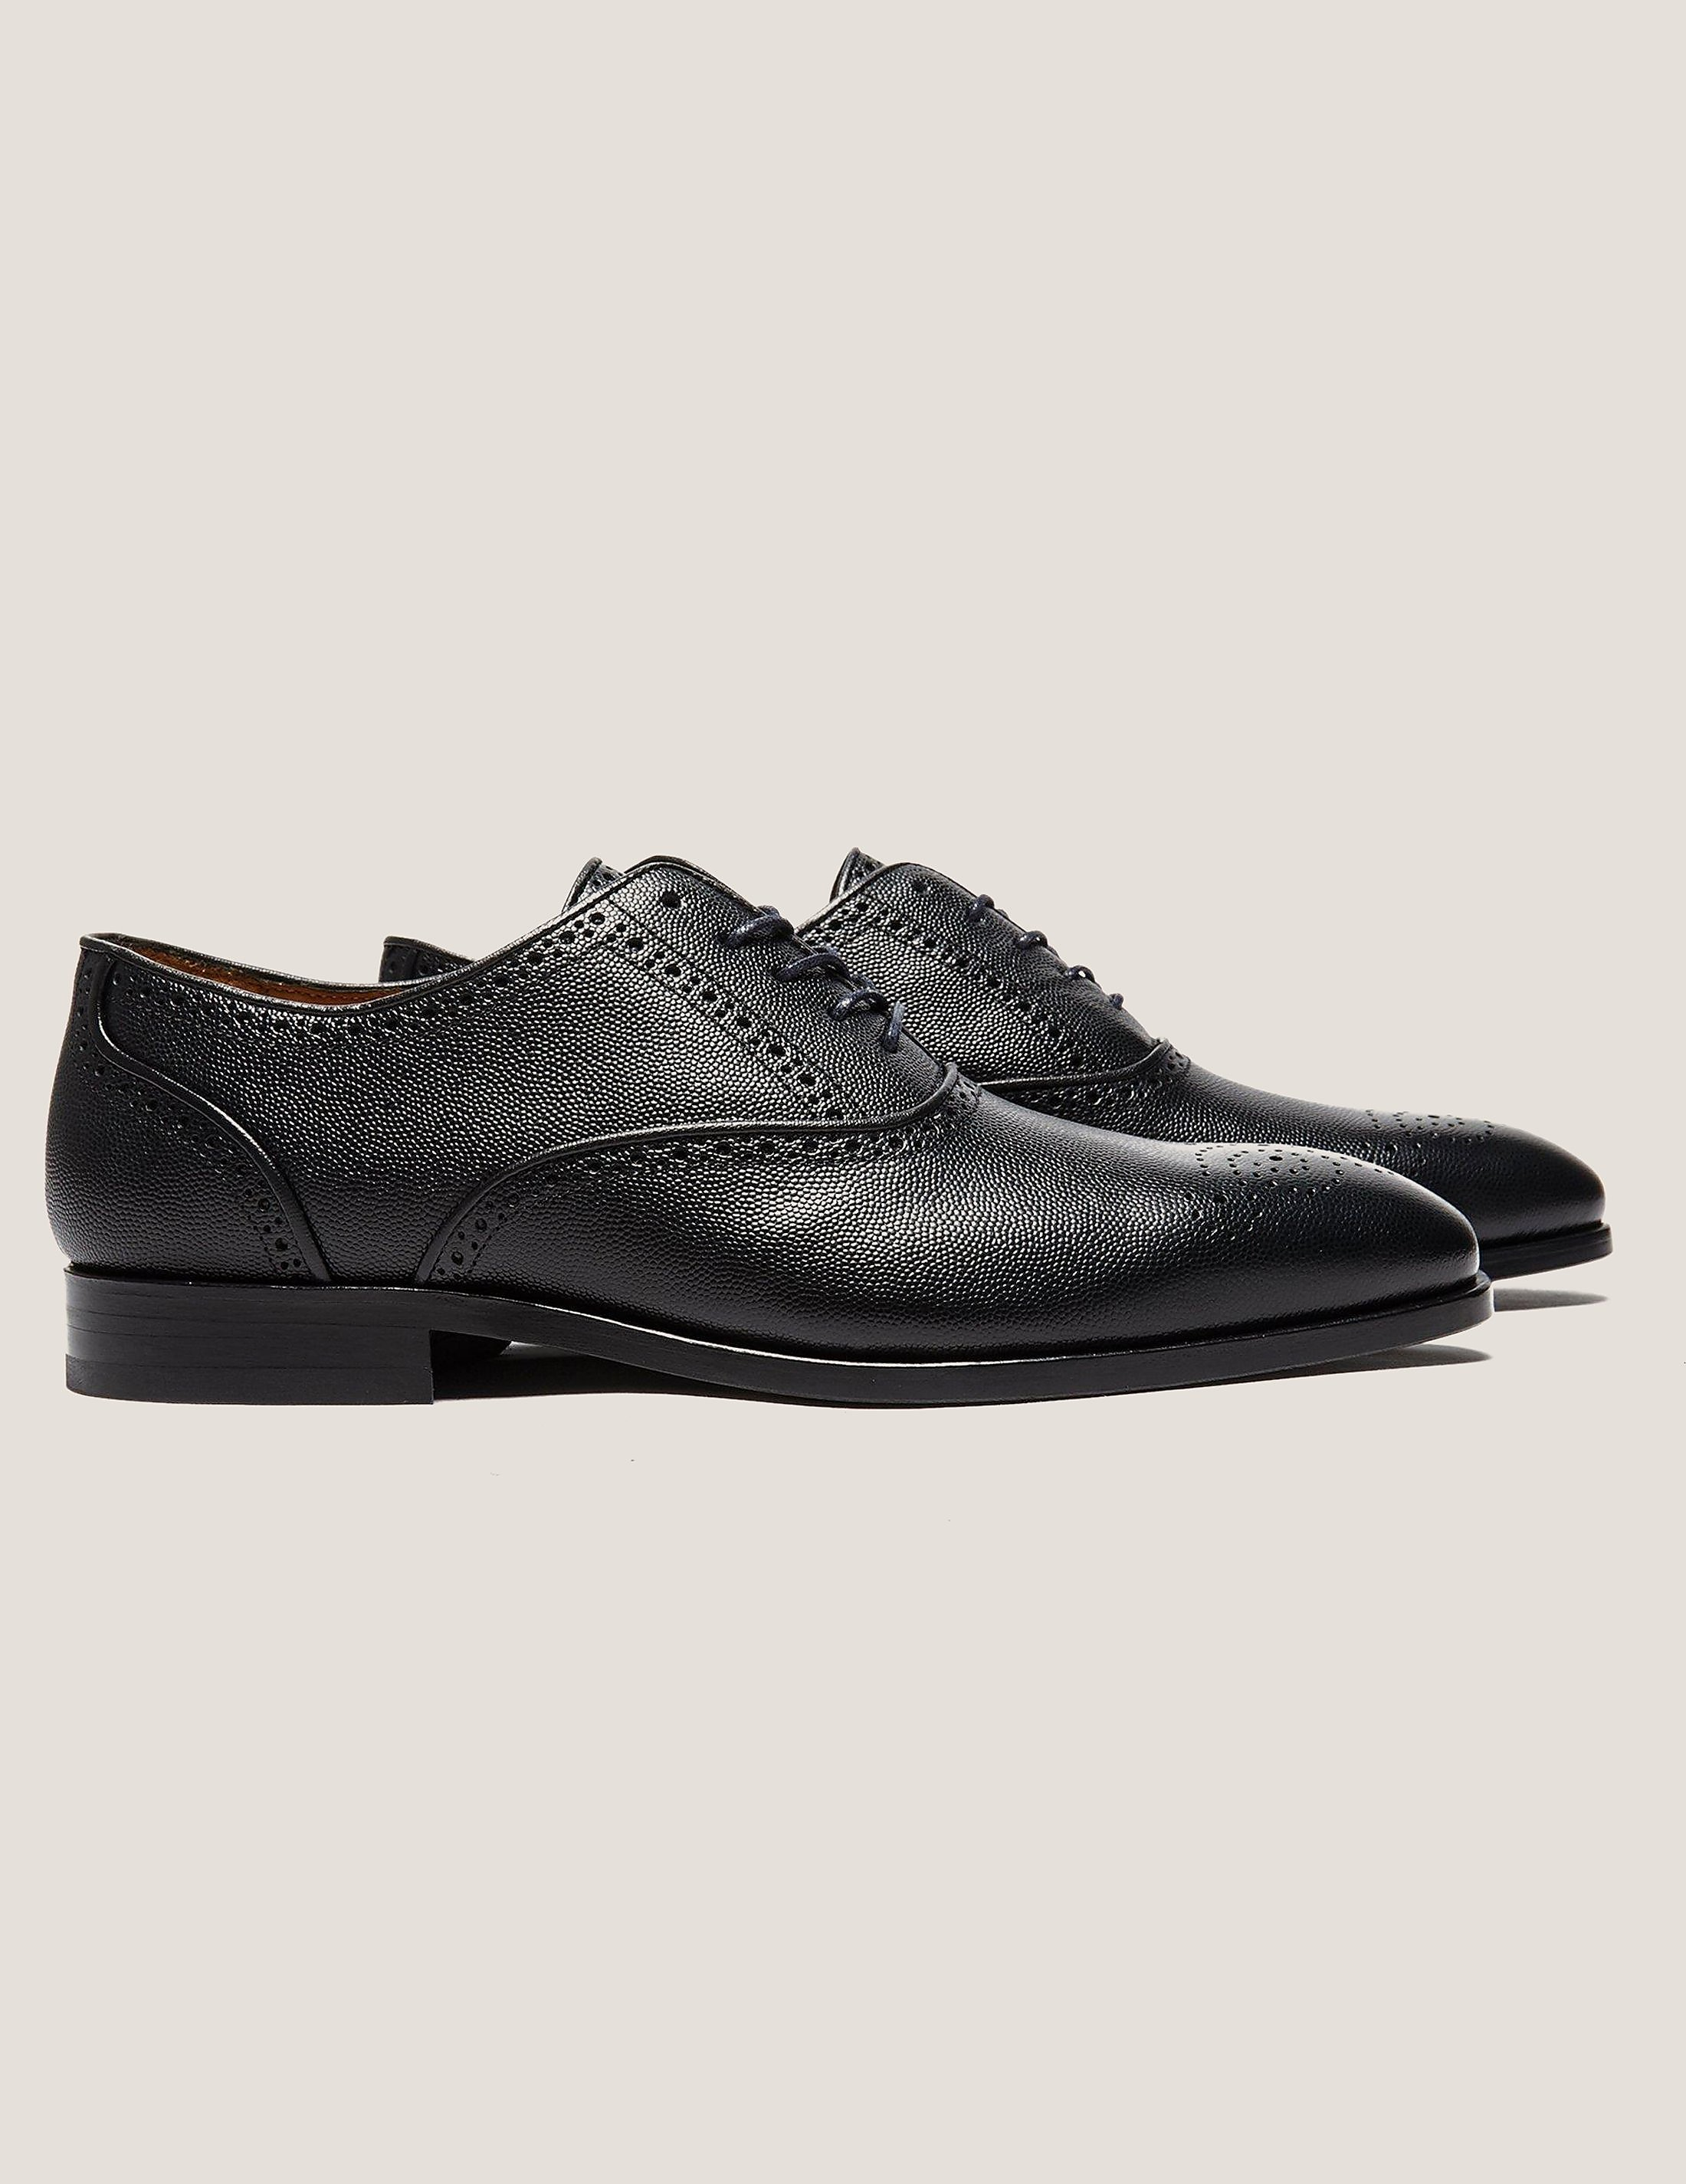 Paul Smith Gilbert Brogues